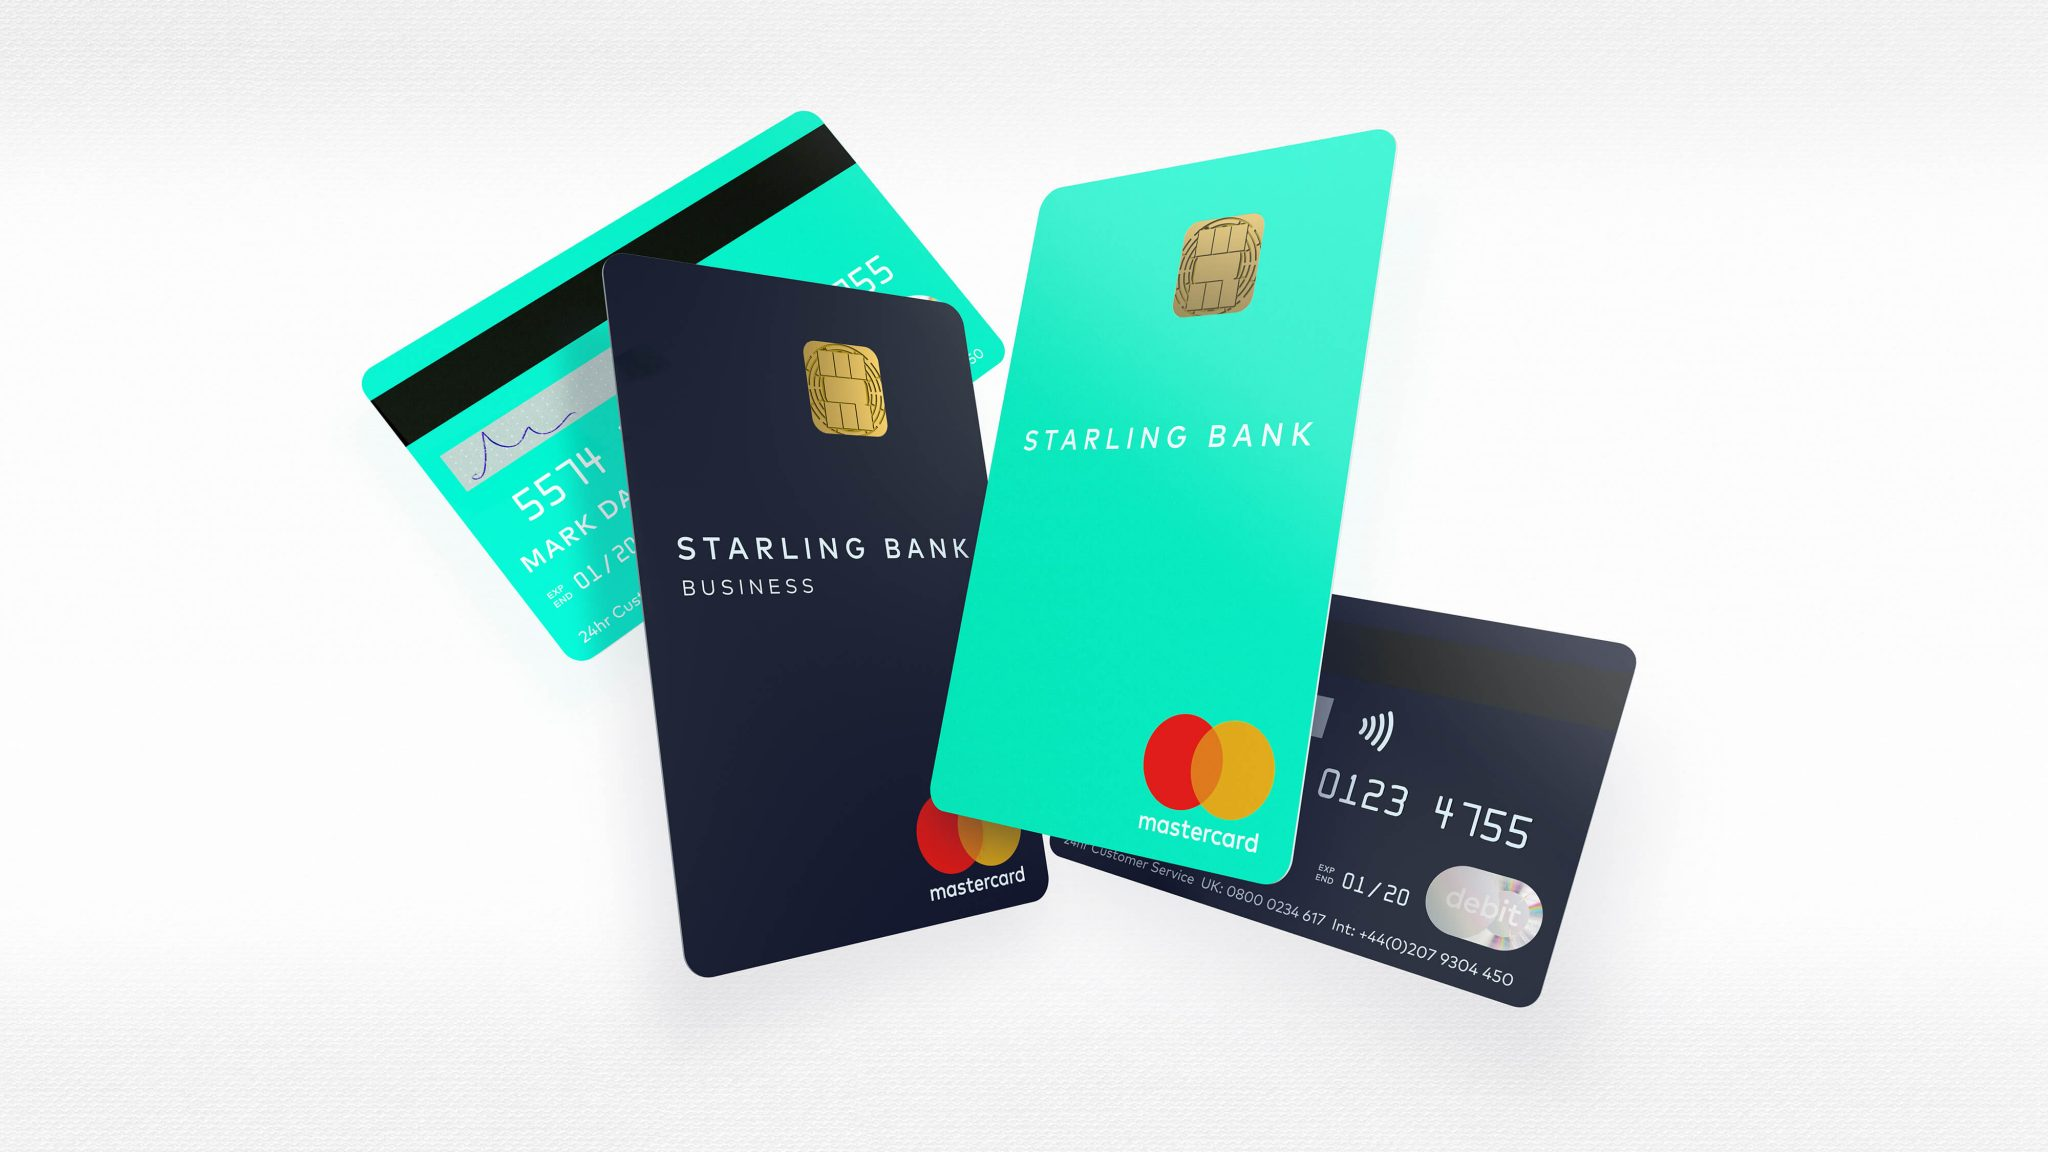 Starling cards